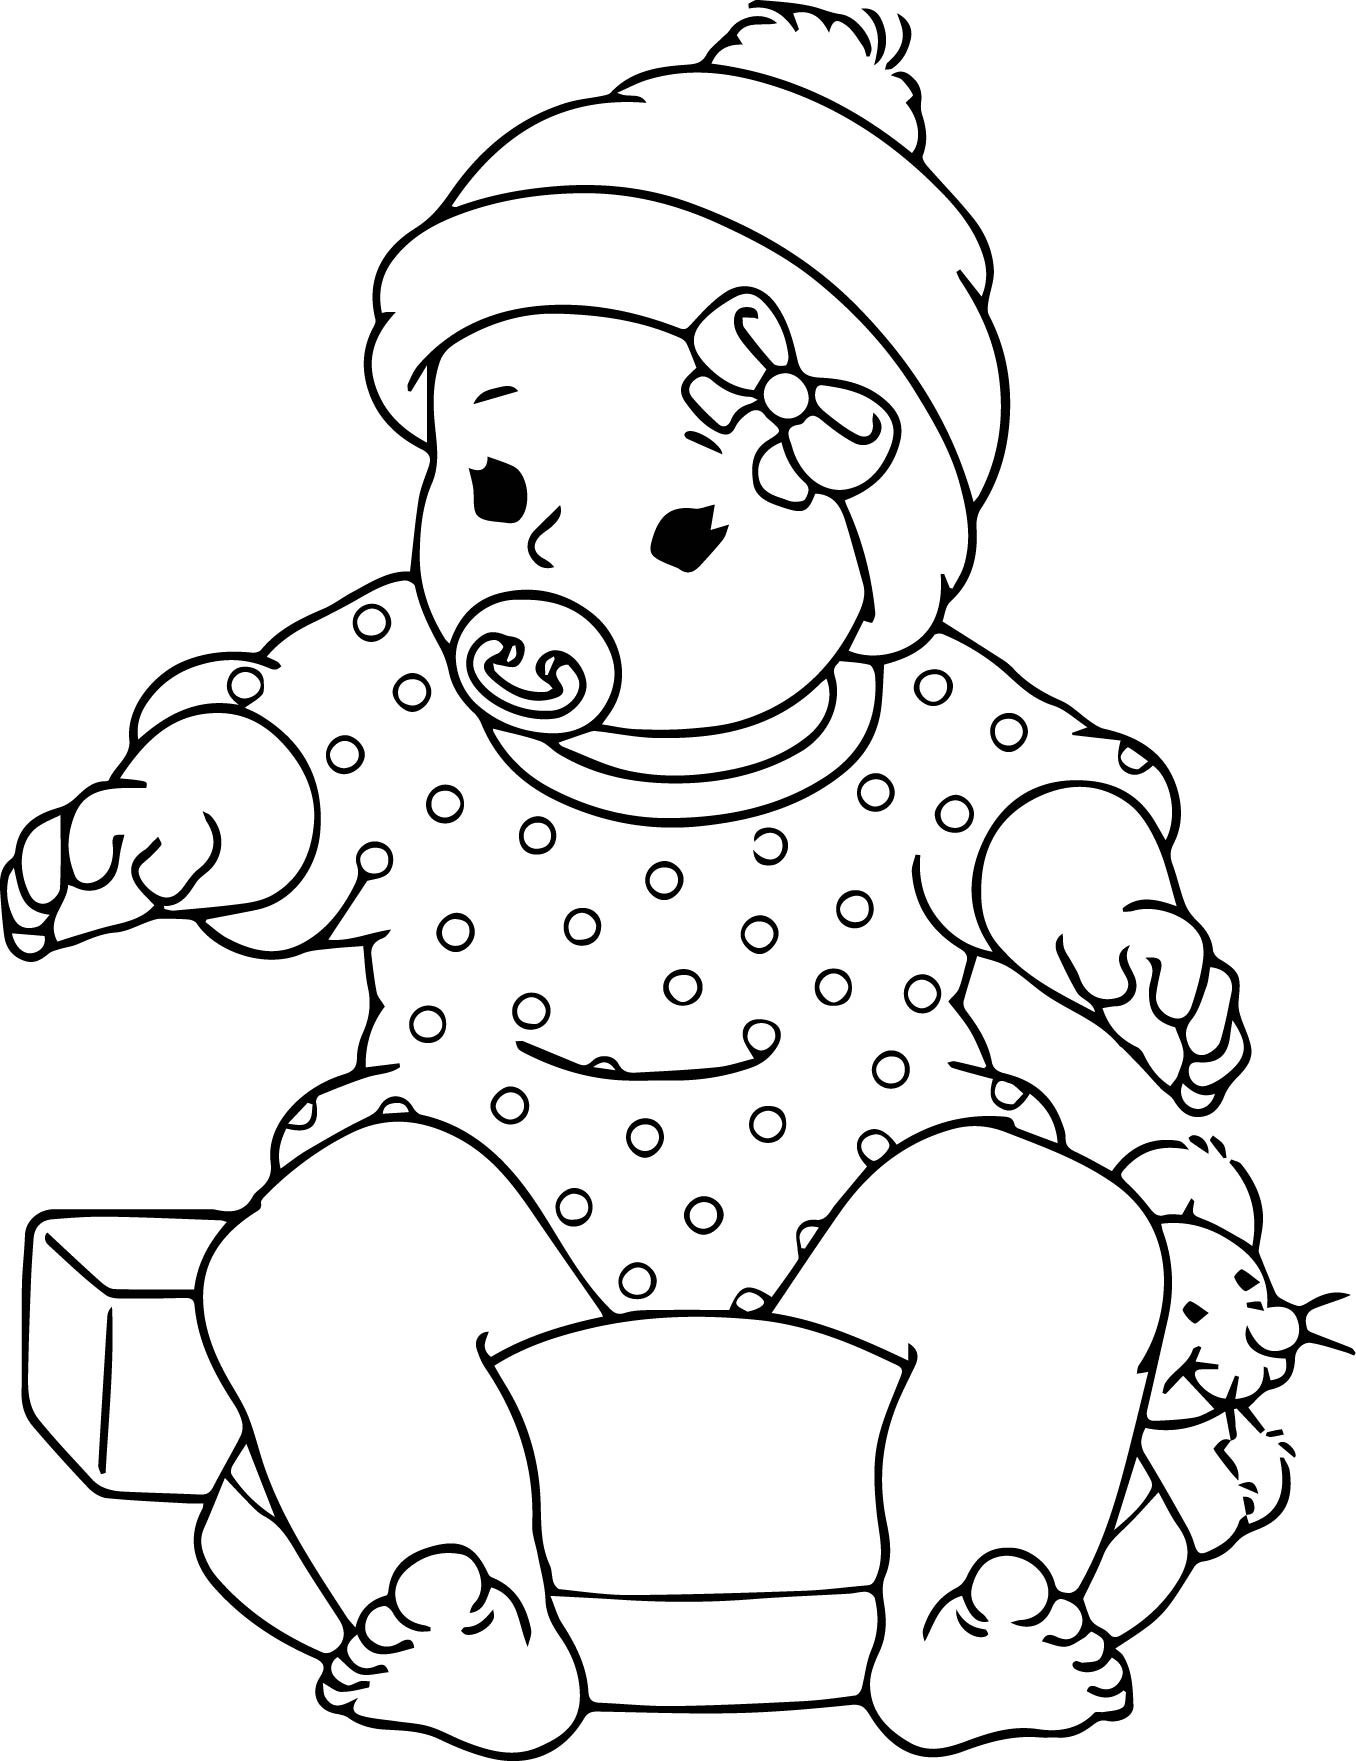 dolls coloring pages lol coloring pages lol dolls for coloring and painting dolls coloring pages